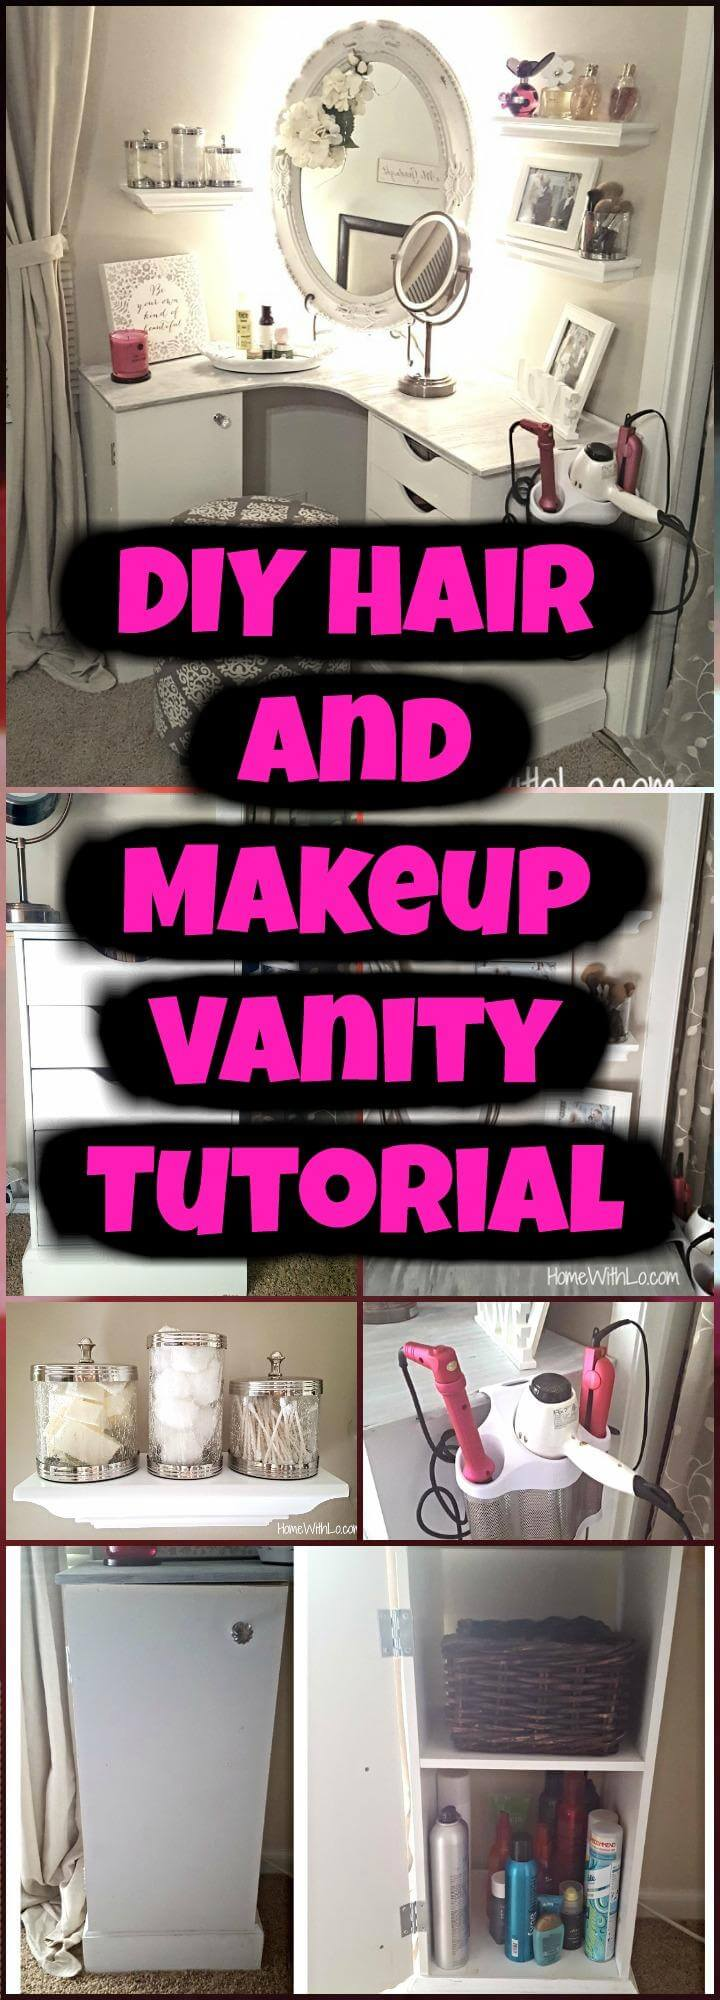 DIY easy hair and makeup vanity